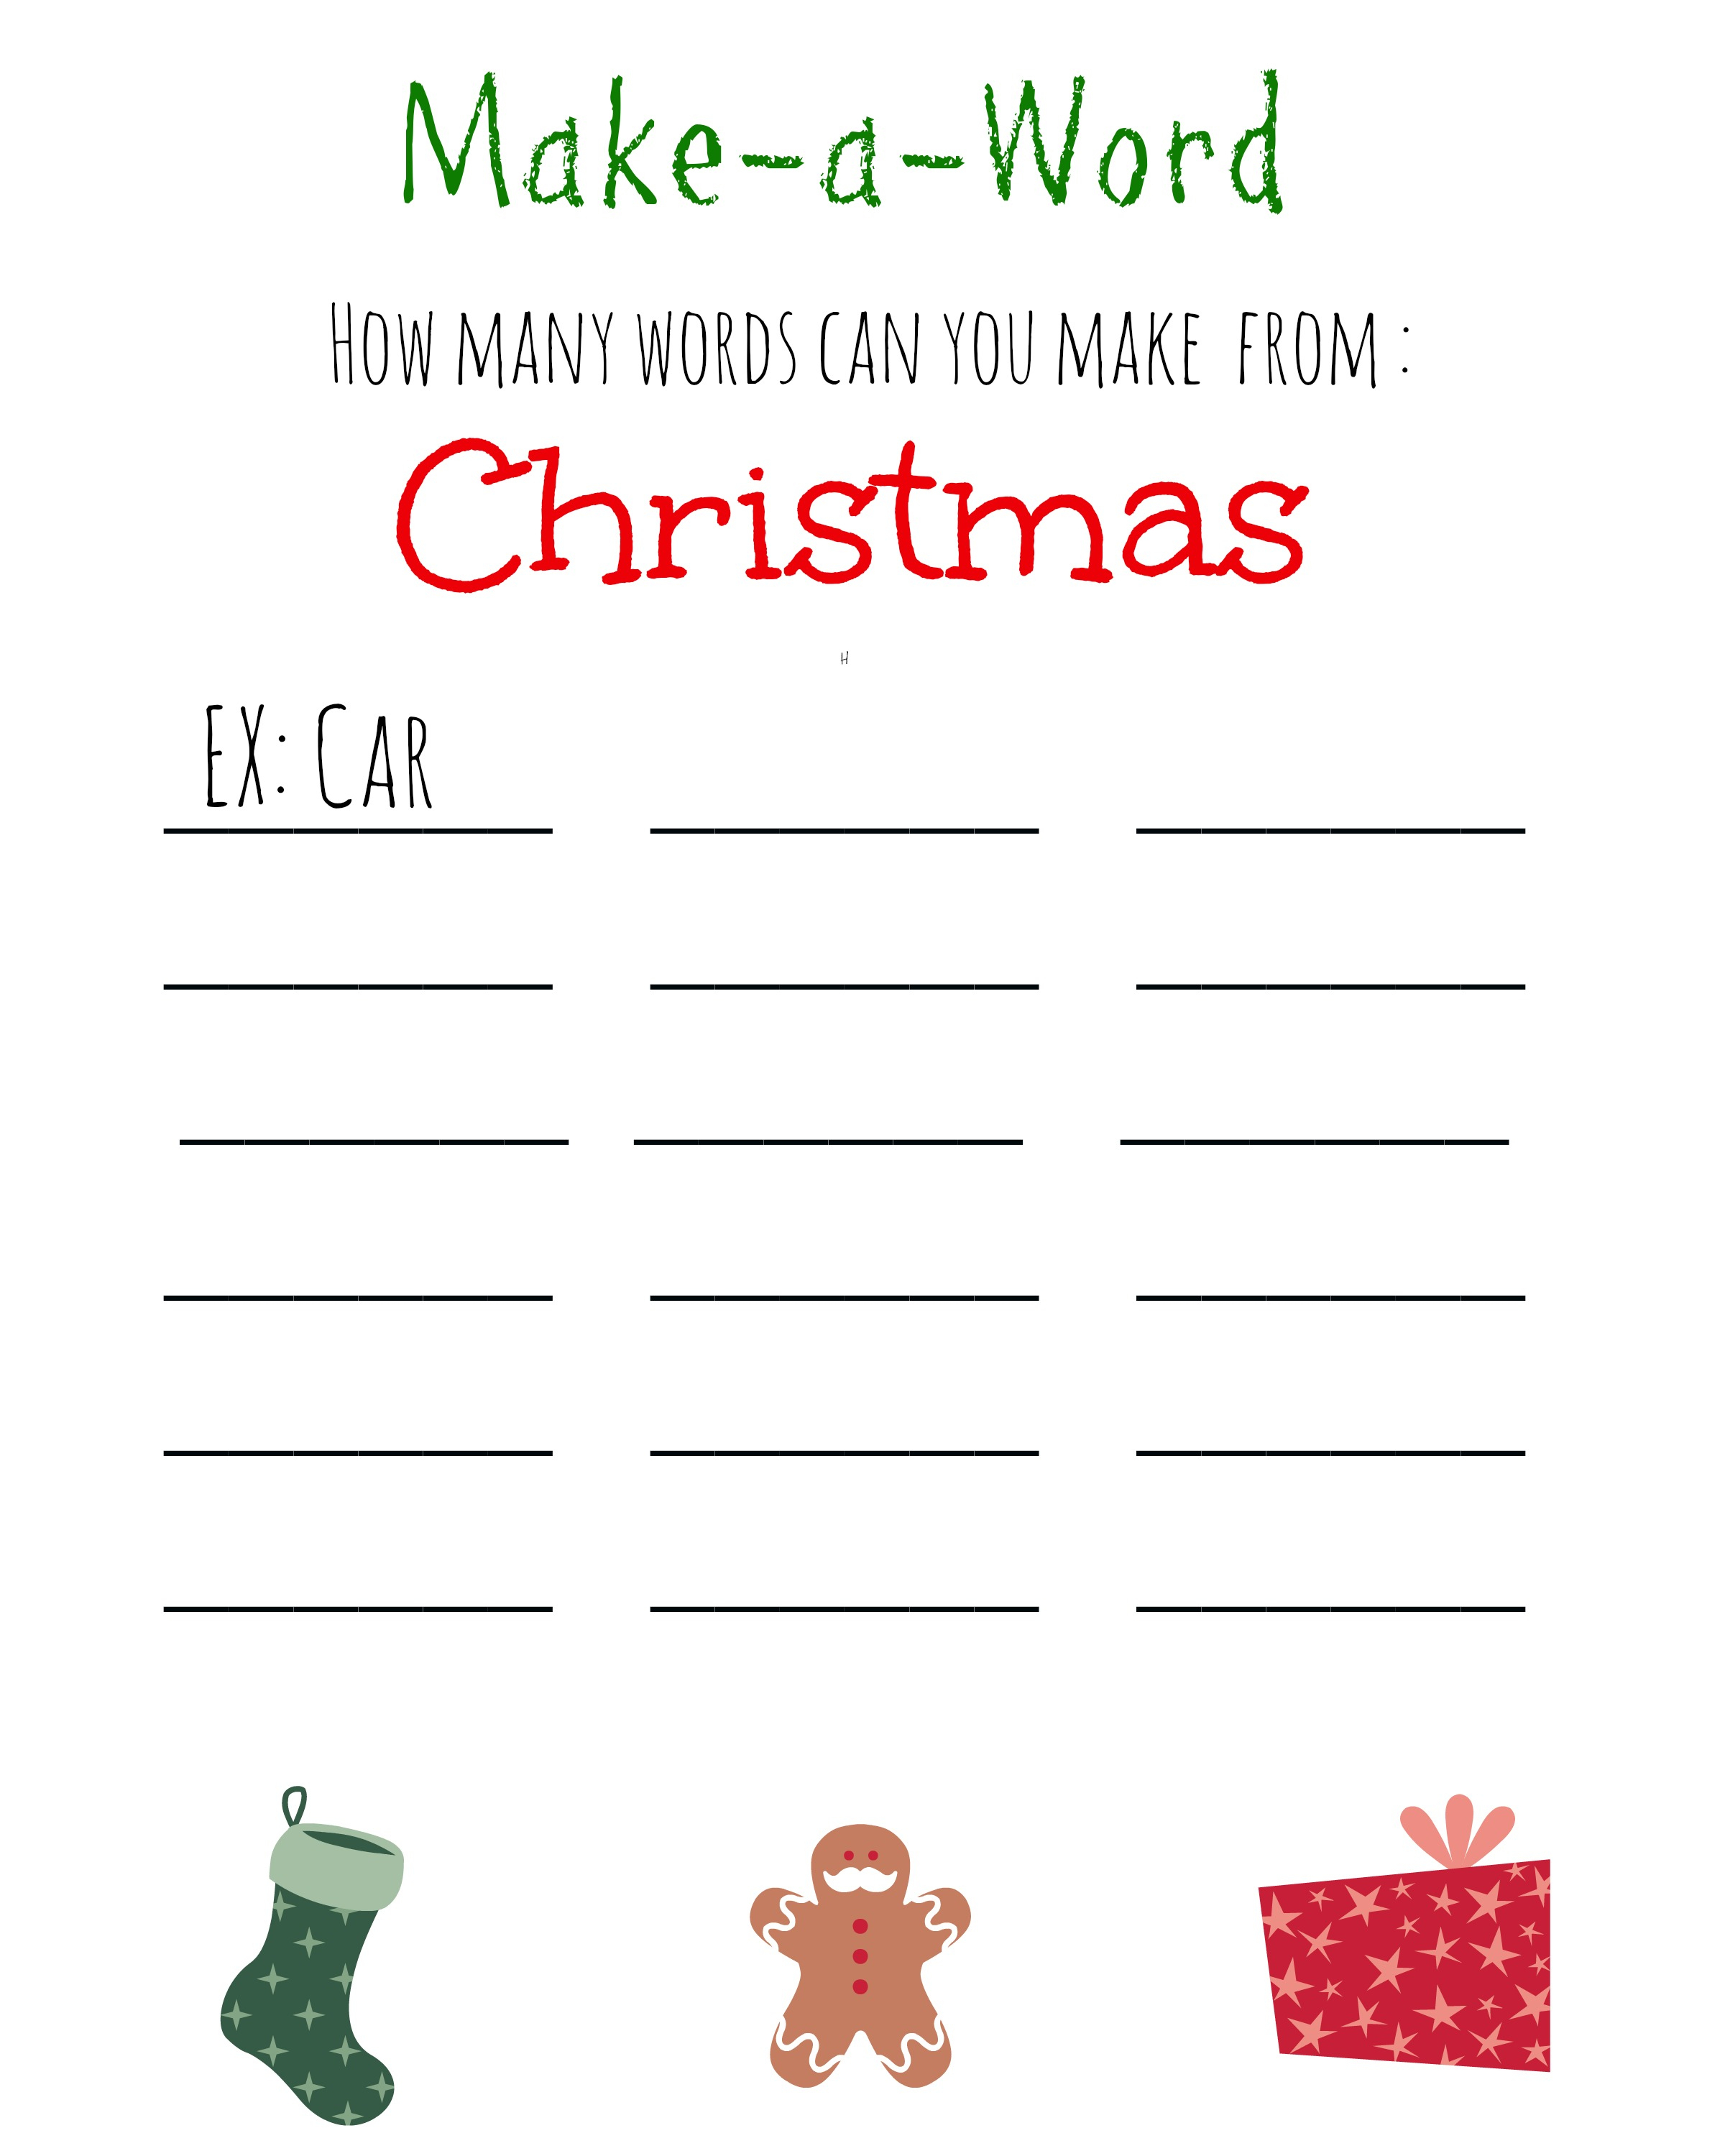 Christmas Games For Kids ~ Free Printable, Christmas Make A Word - Free Printable Word Games